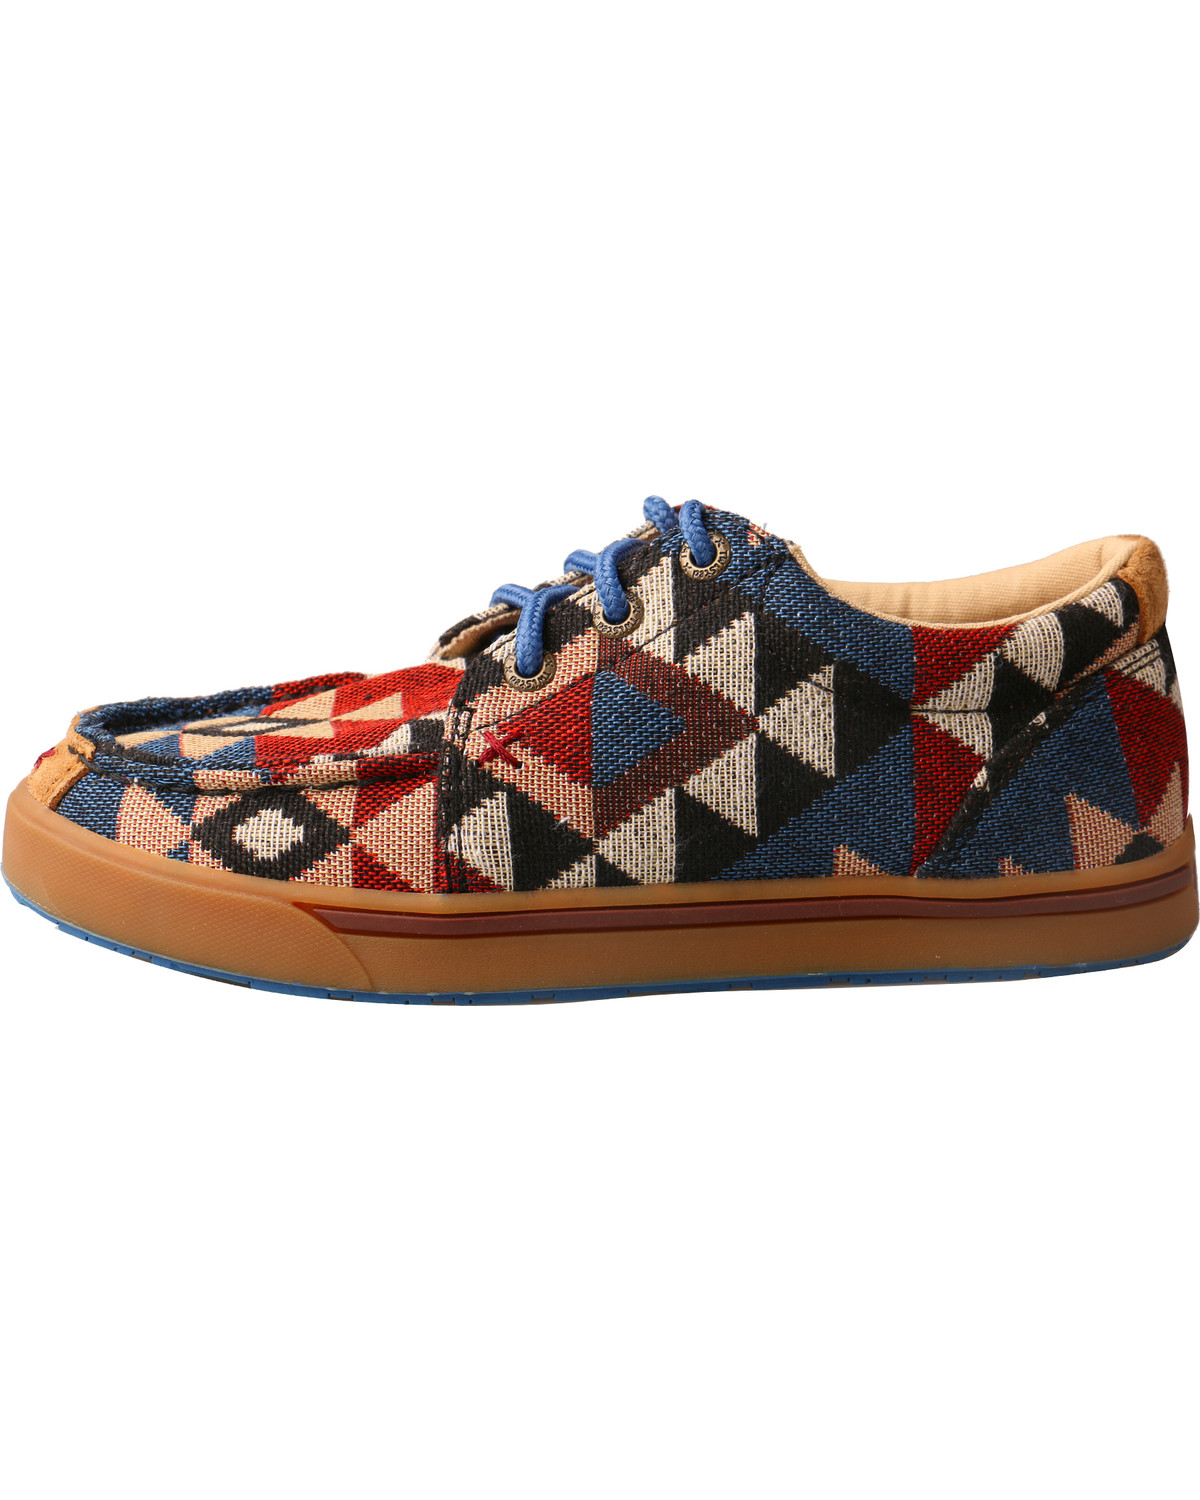 Hooey Lopers By Twisted X Youth Boys Pattern Canvas Shoes